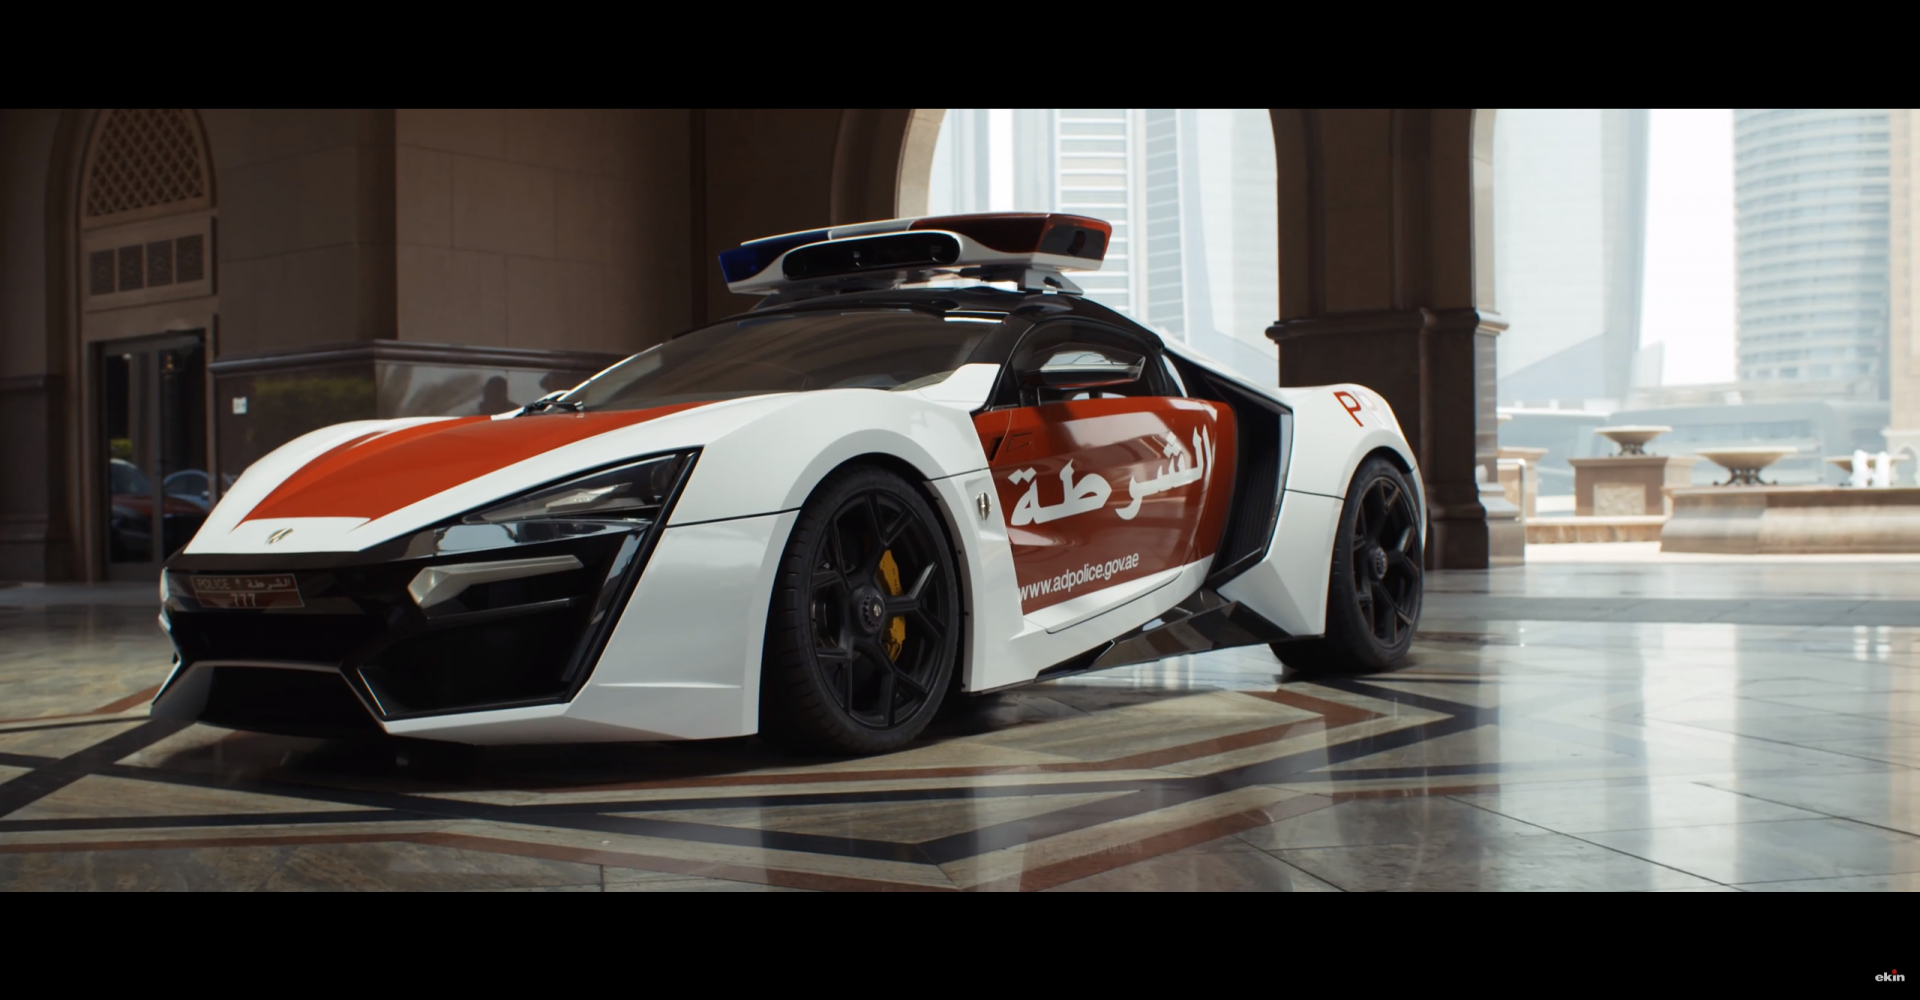 Abu Dhabi's New Police Car Is As Futuristic As It Looks